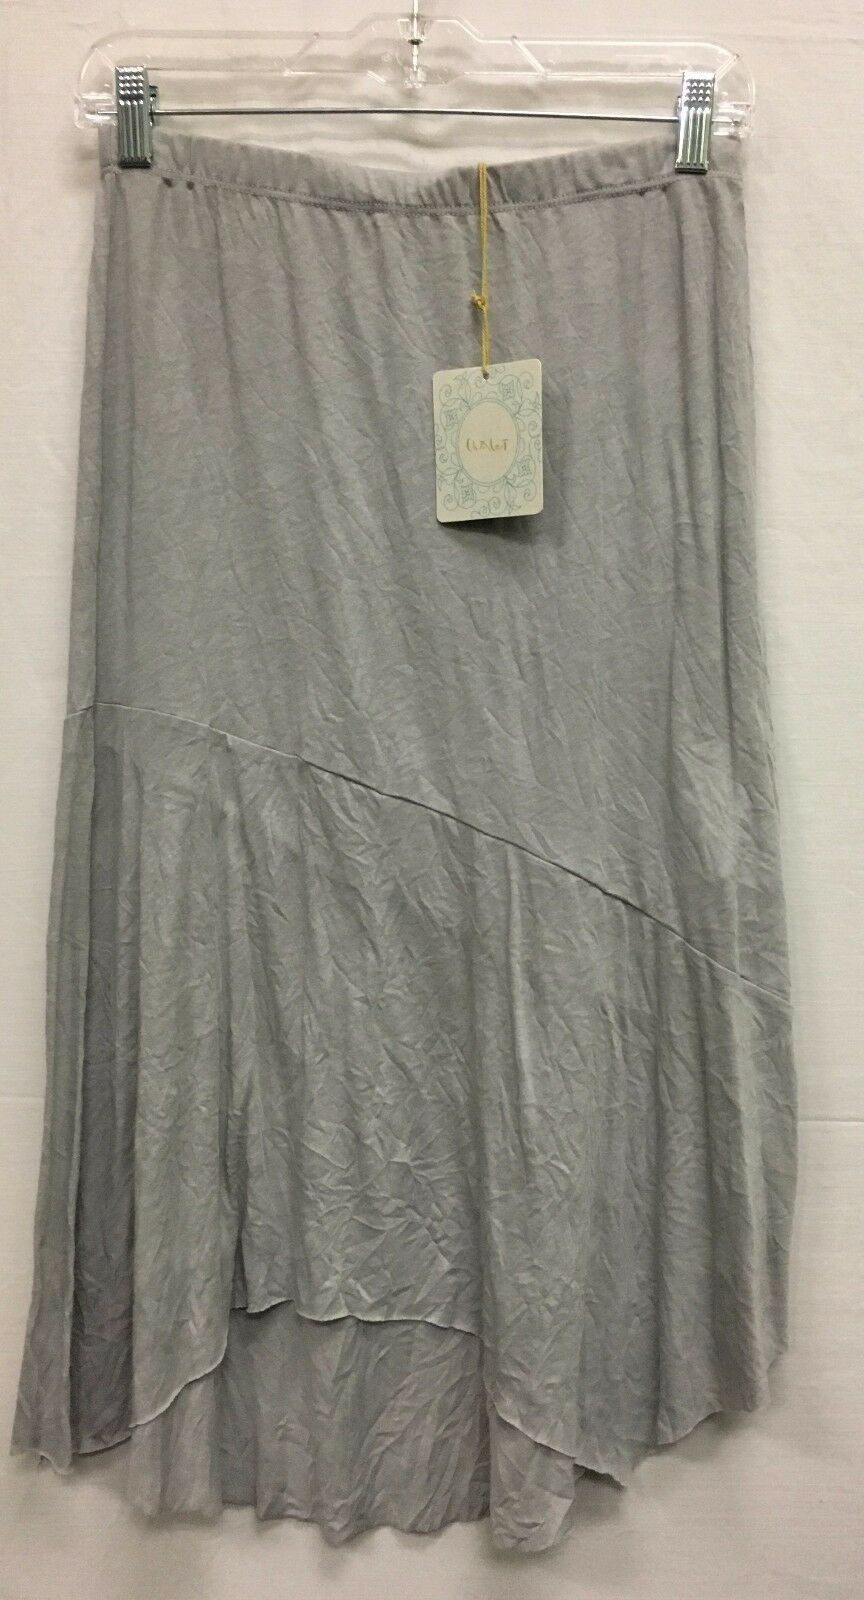 Chalet Women's High Low Angular Cut Skirt Grey Style CS7722 NEW with Tags